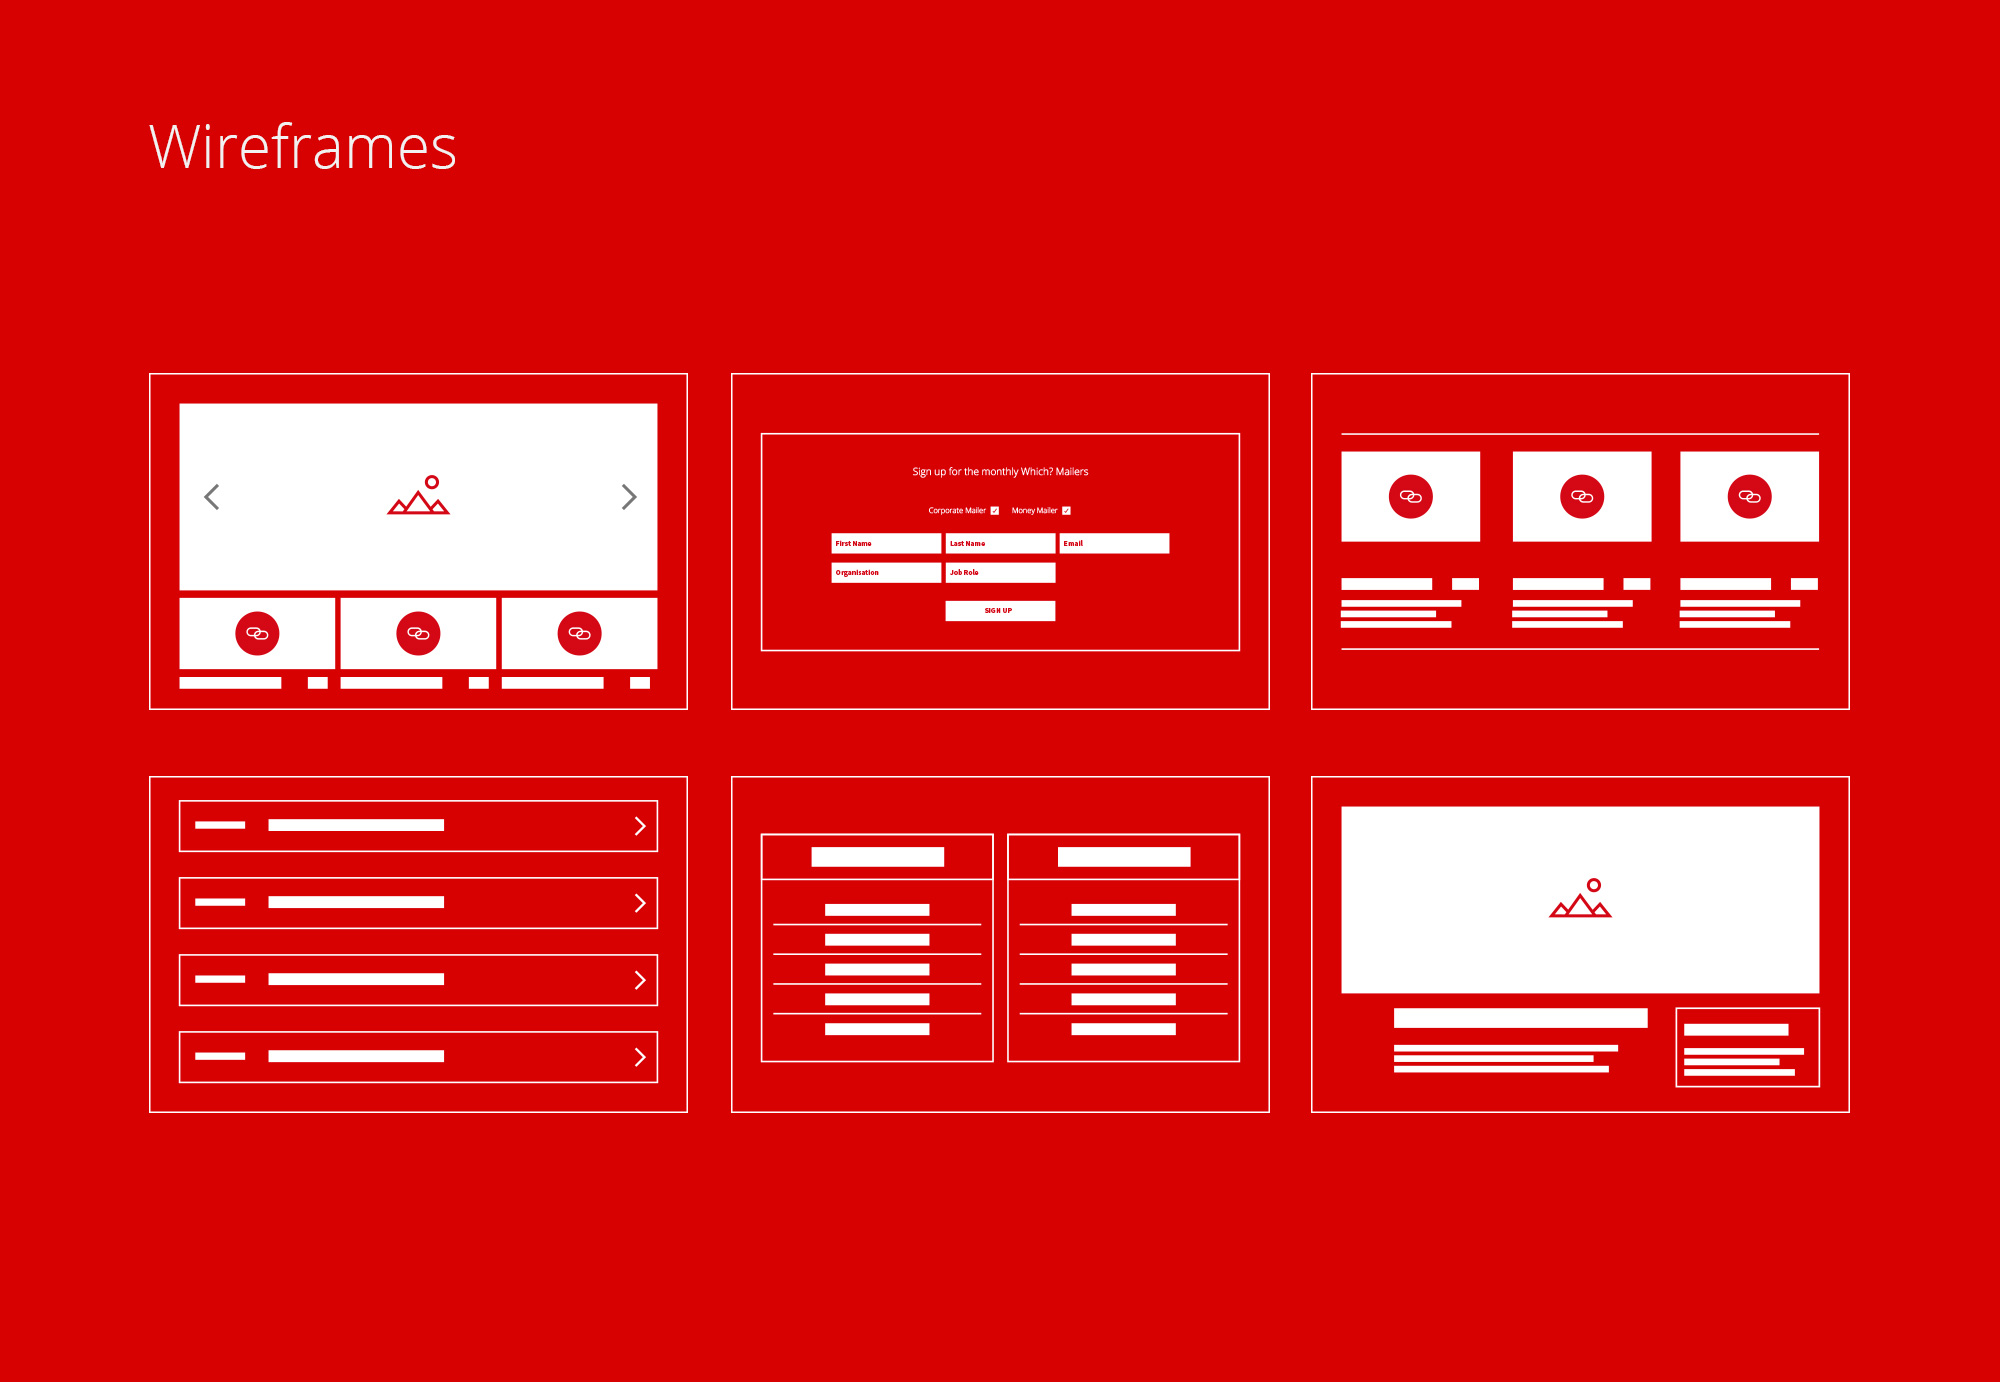 wireframes and user experience design for Which?